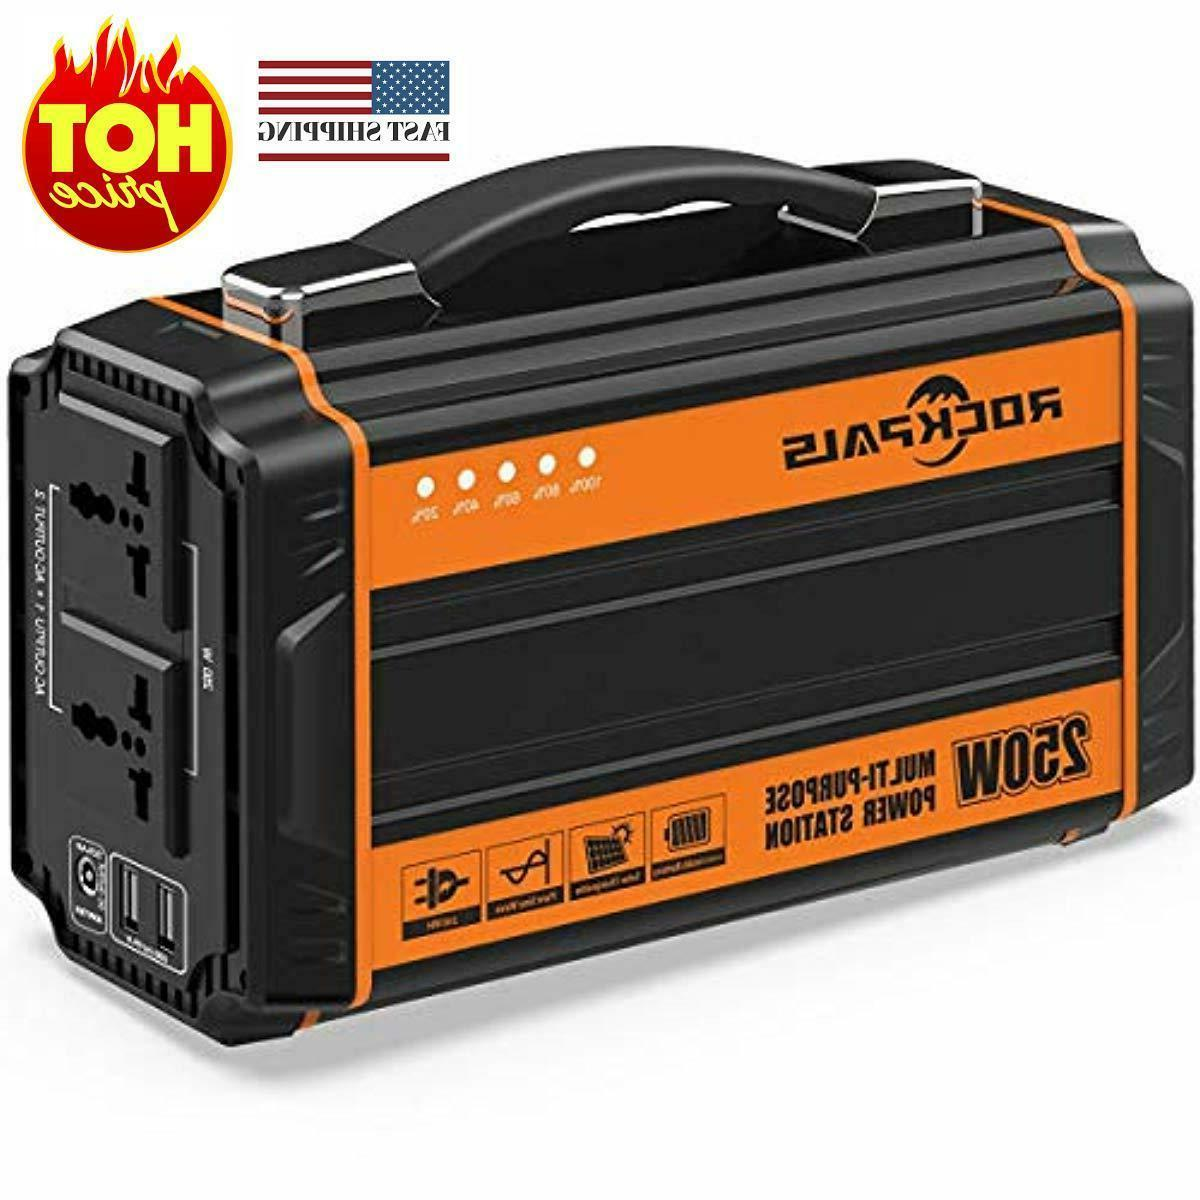 250 watt portable generator rechargeable lithium battery